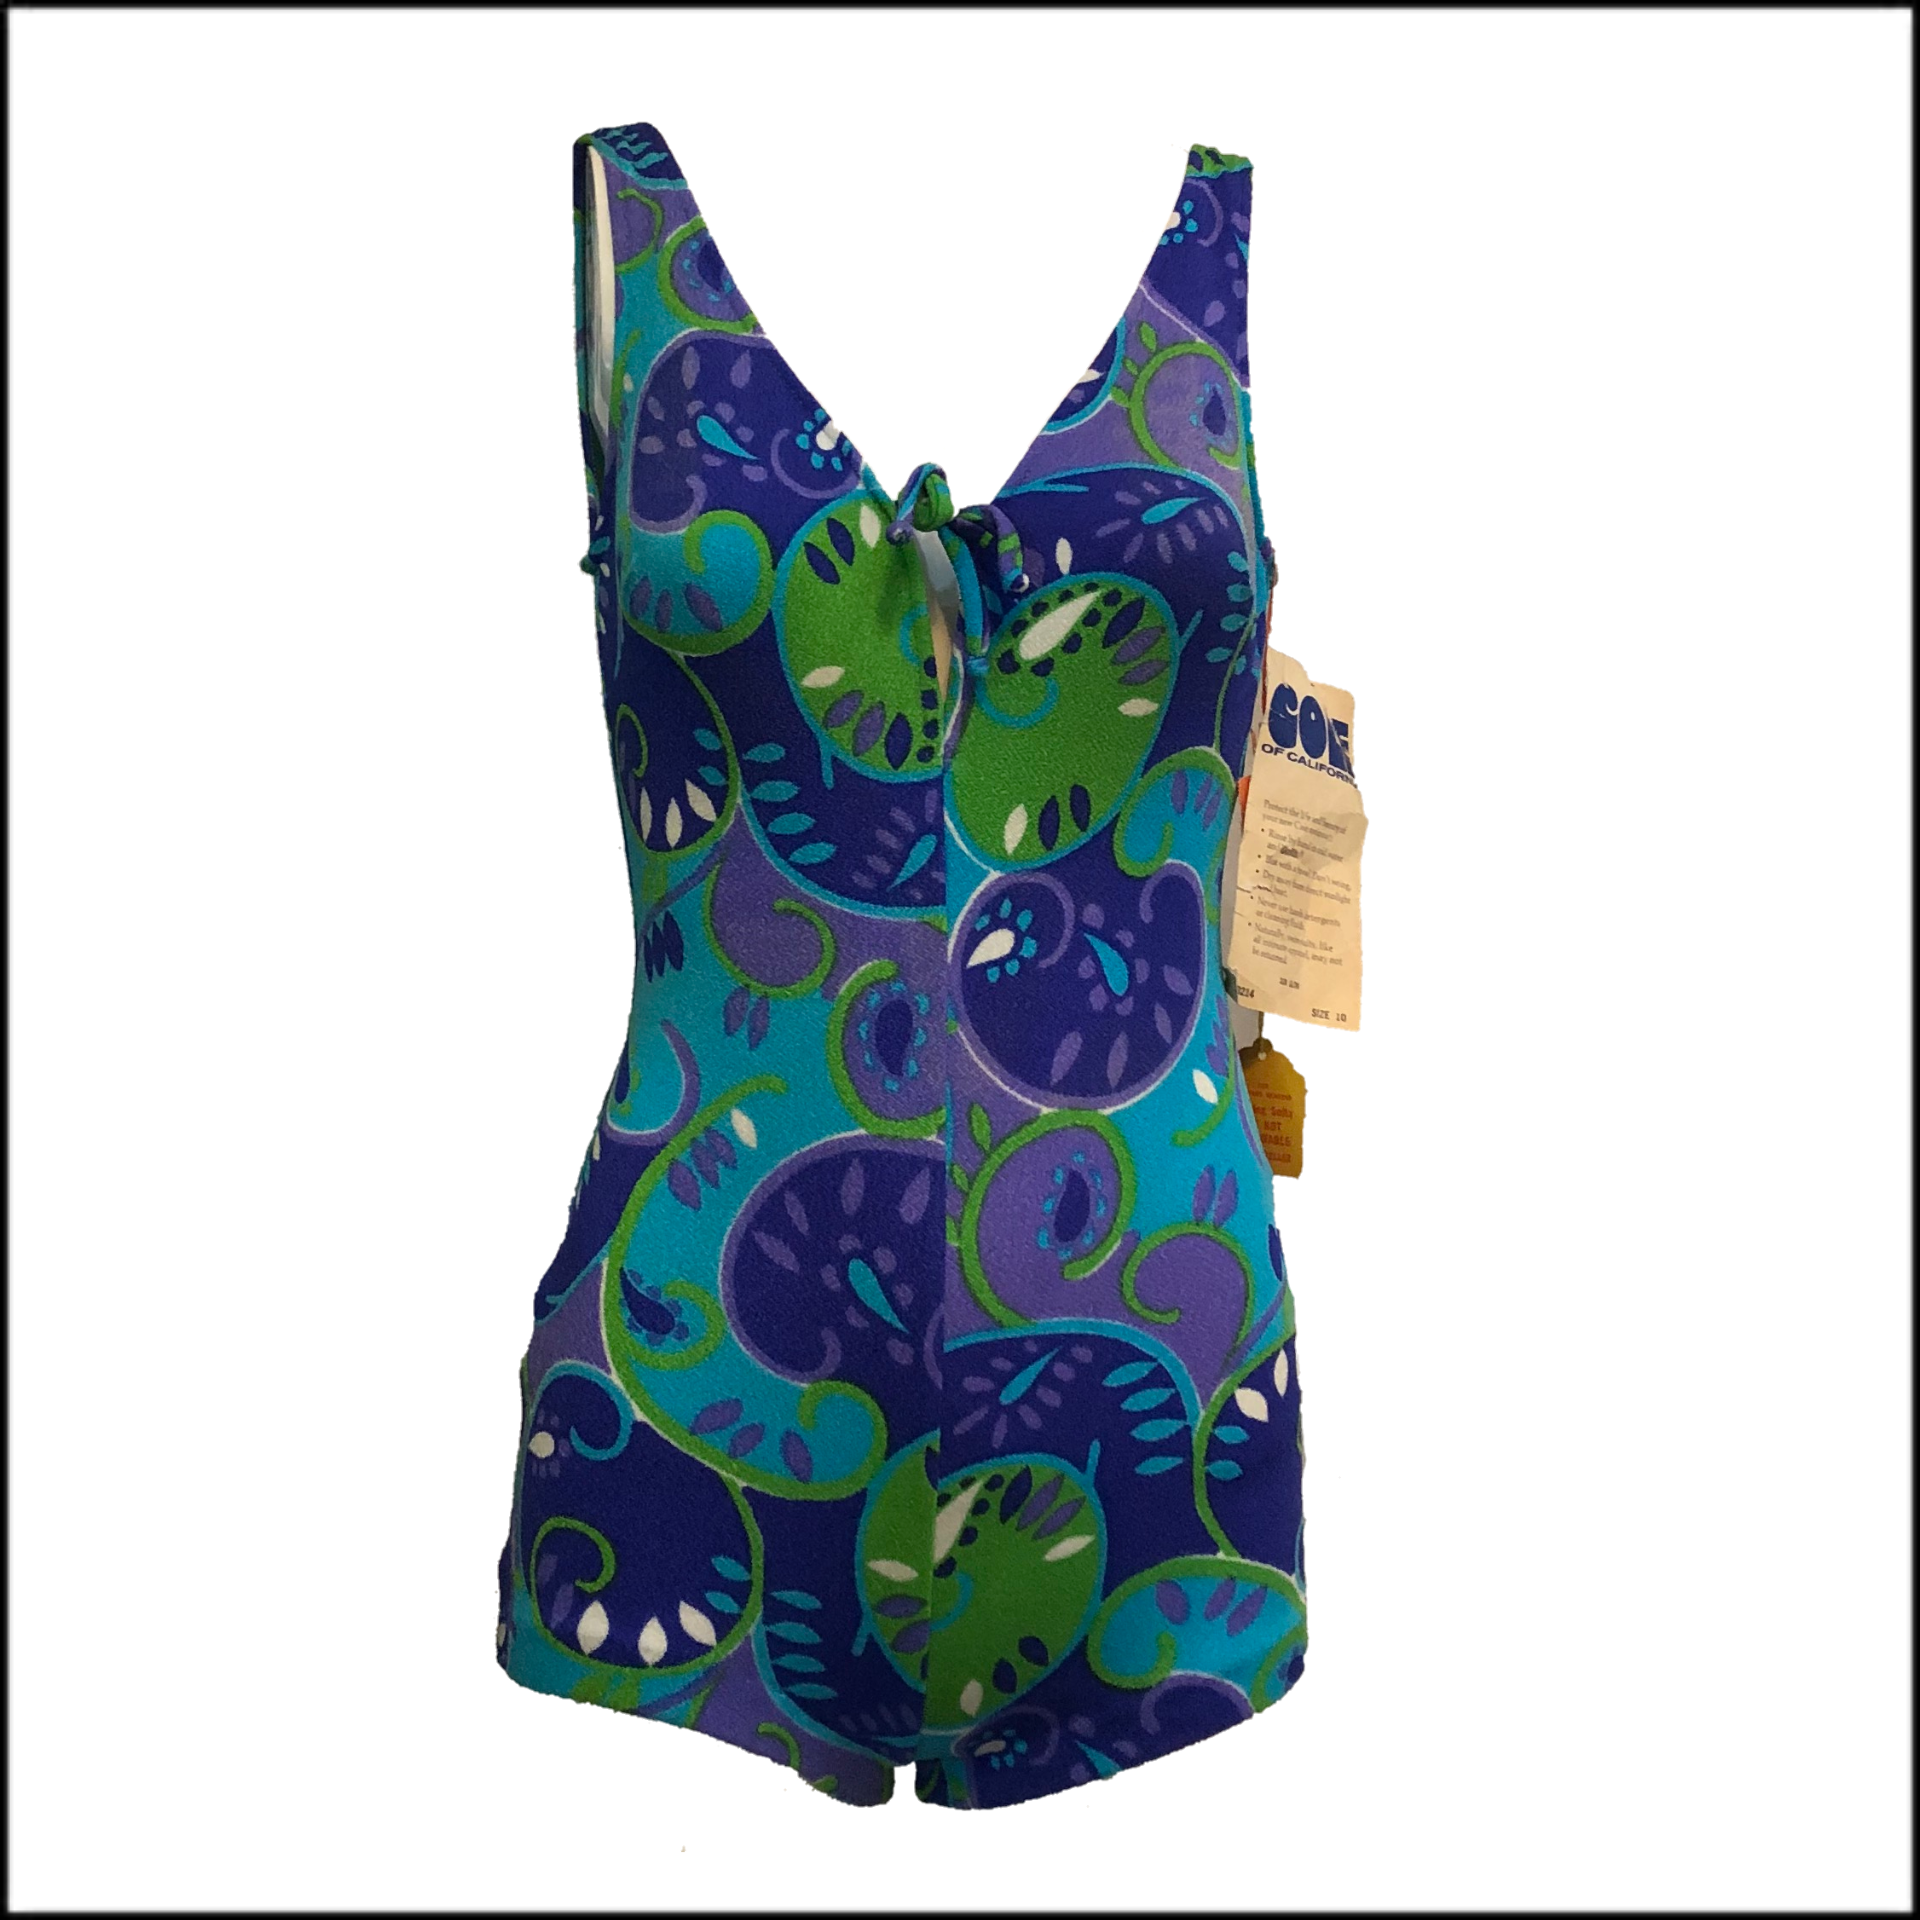 Cole 60s Psychedelic Blue Green One Piece Swimsuit with Tags FRONT 1 of 4